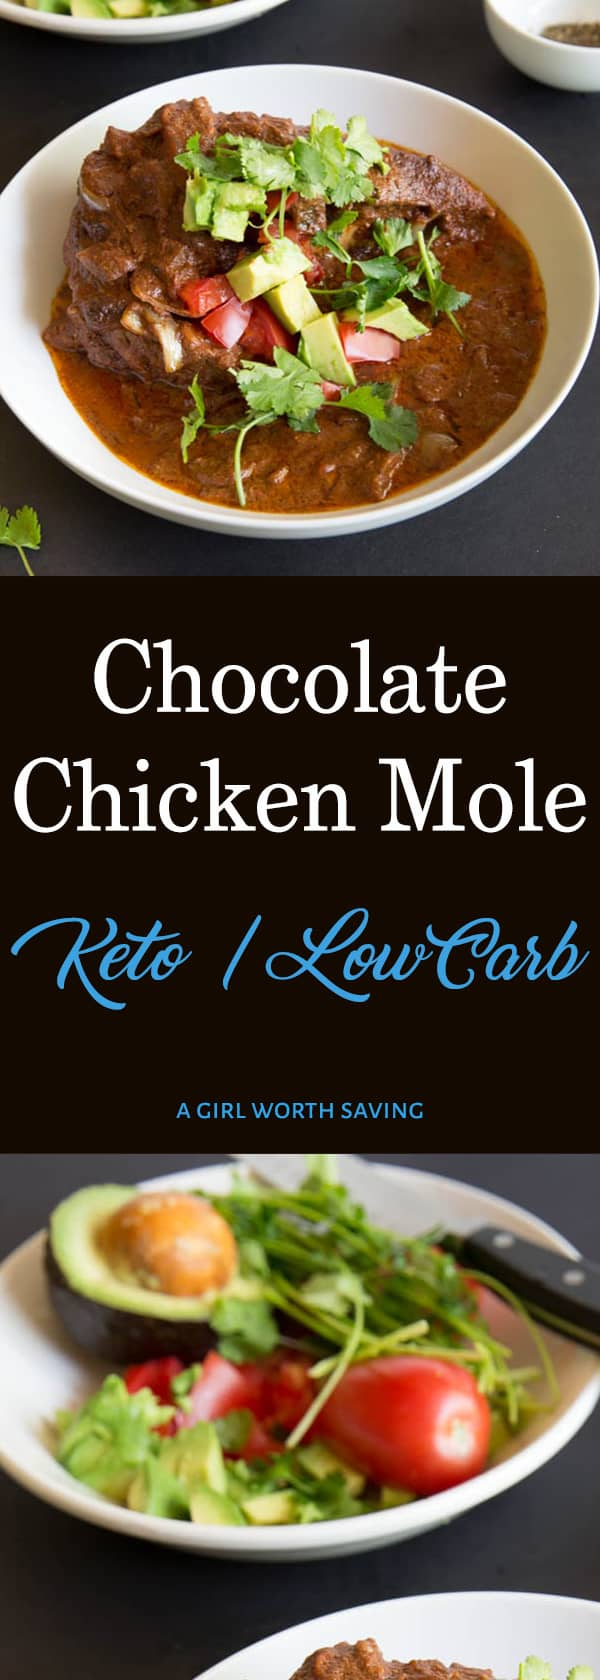 Chocolate, cinnamon and almond butter make this chicken mole authentic as well as low carb and Keto! This Mexican recipe is smokey and slightly bitter.